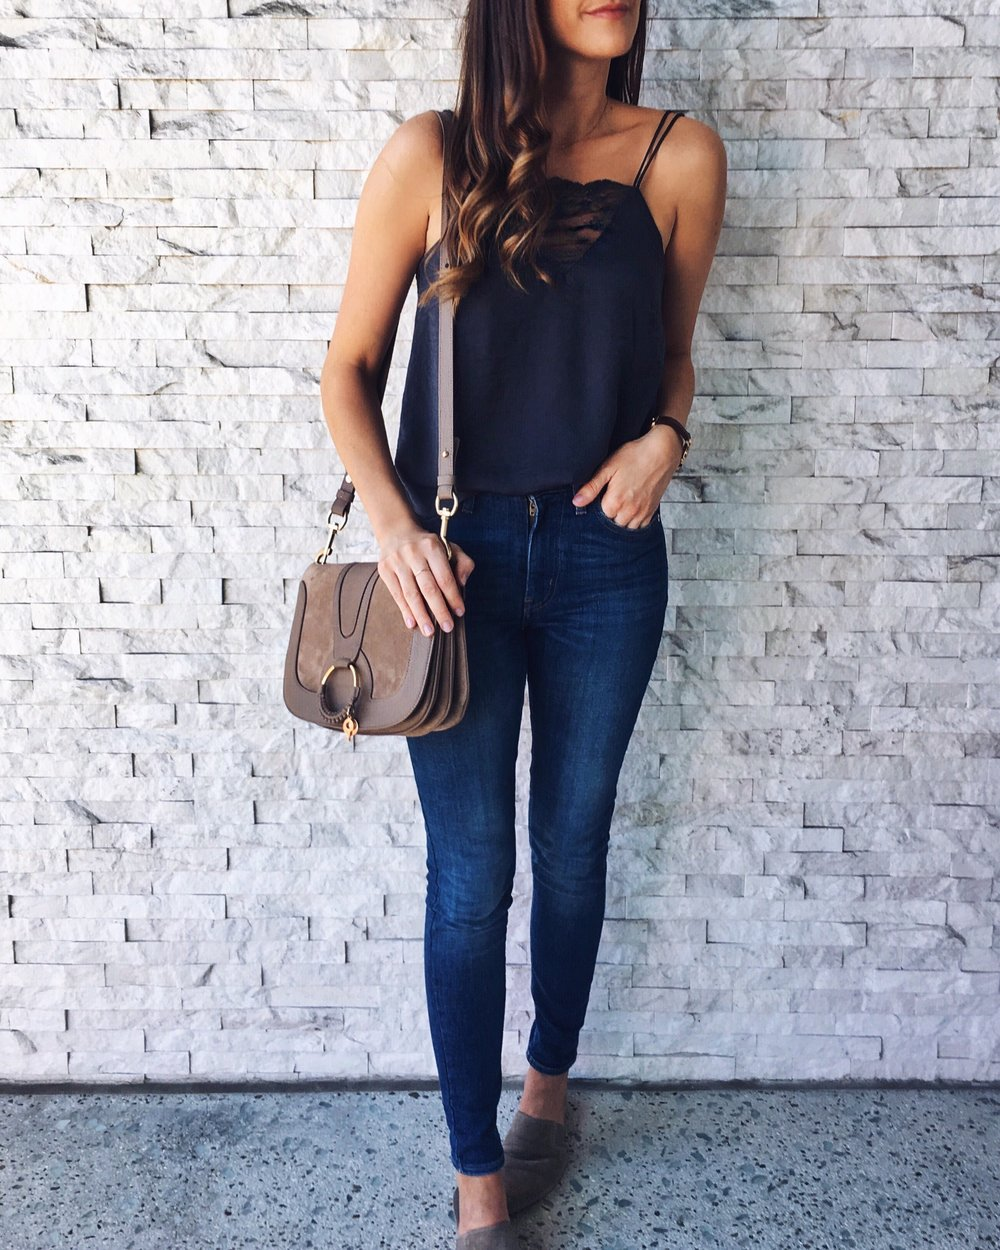 Lace Cami date night outfit